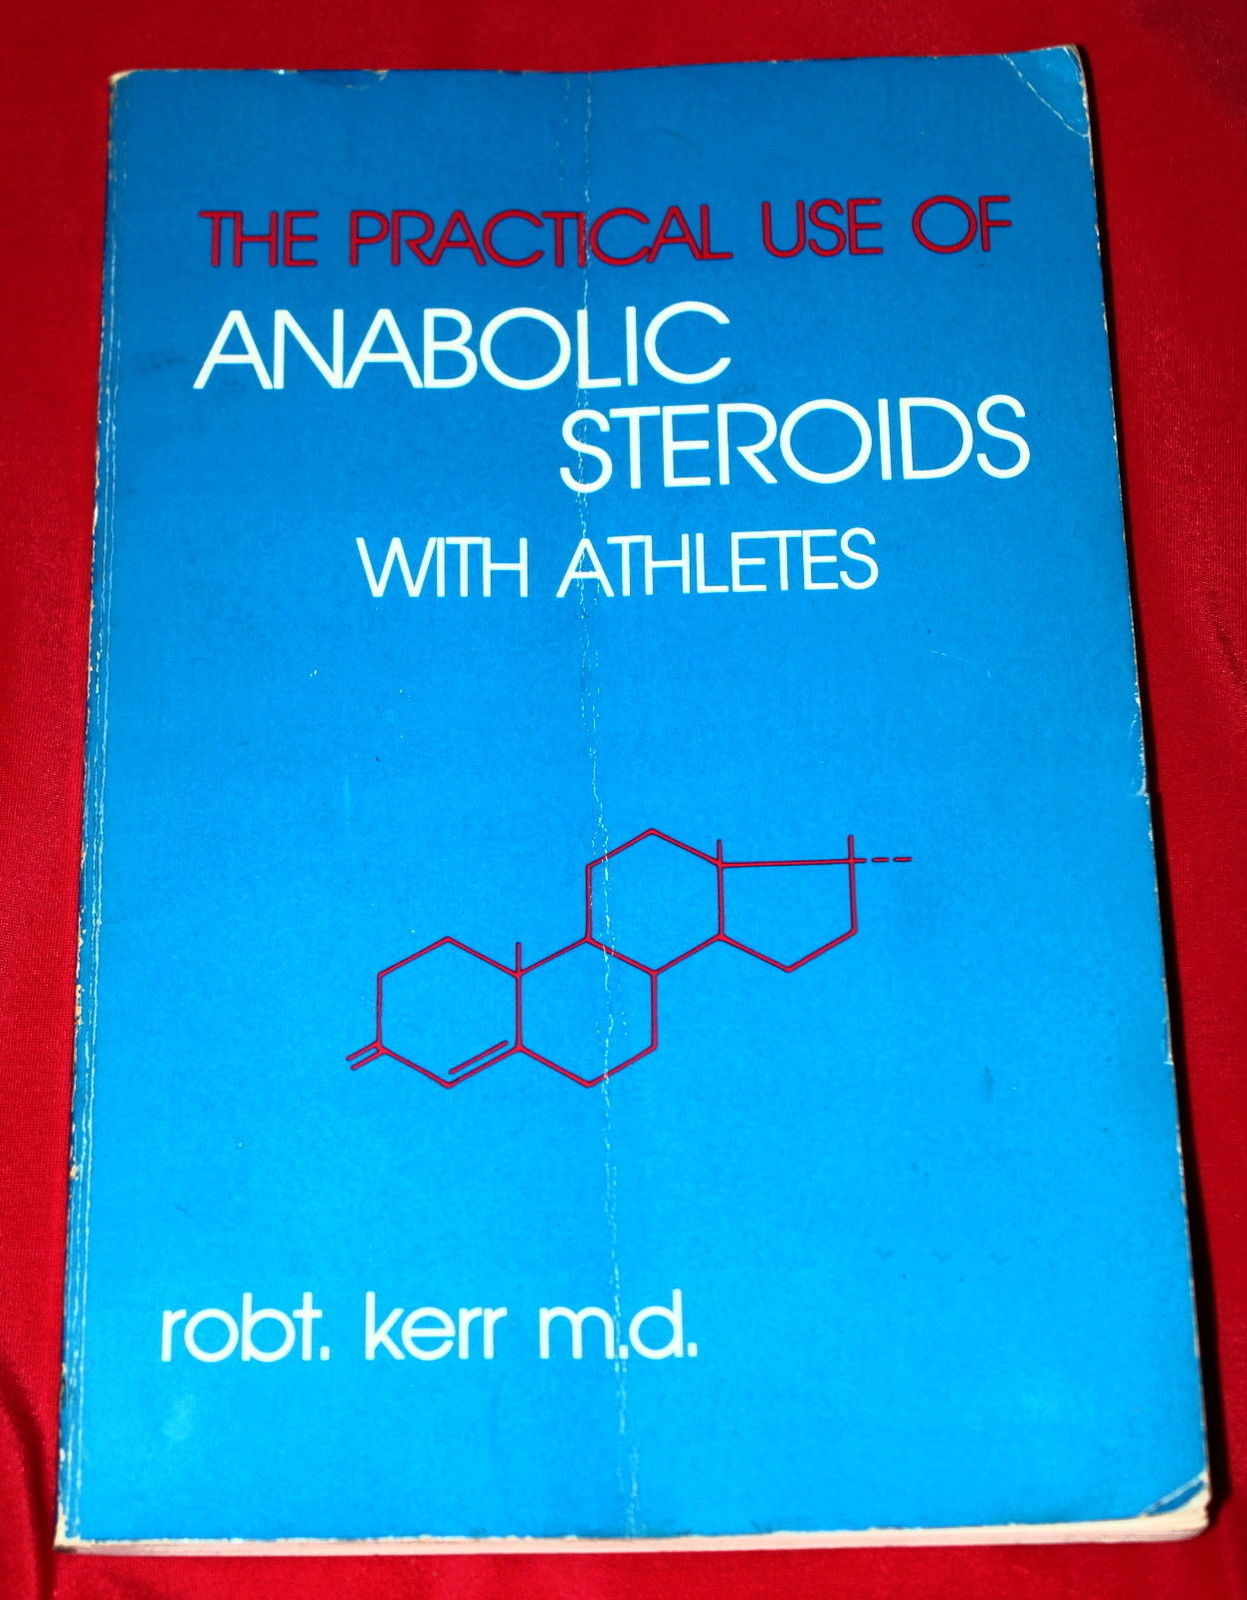 Similar To Steroids But Legal